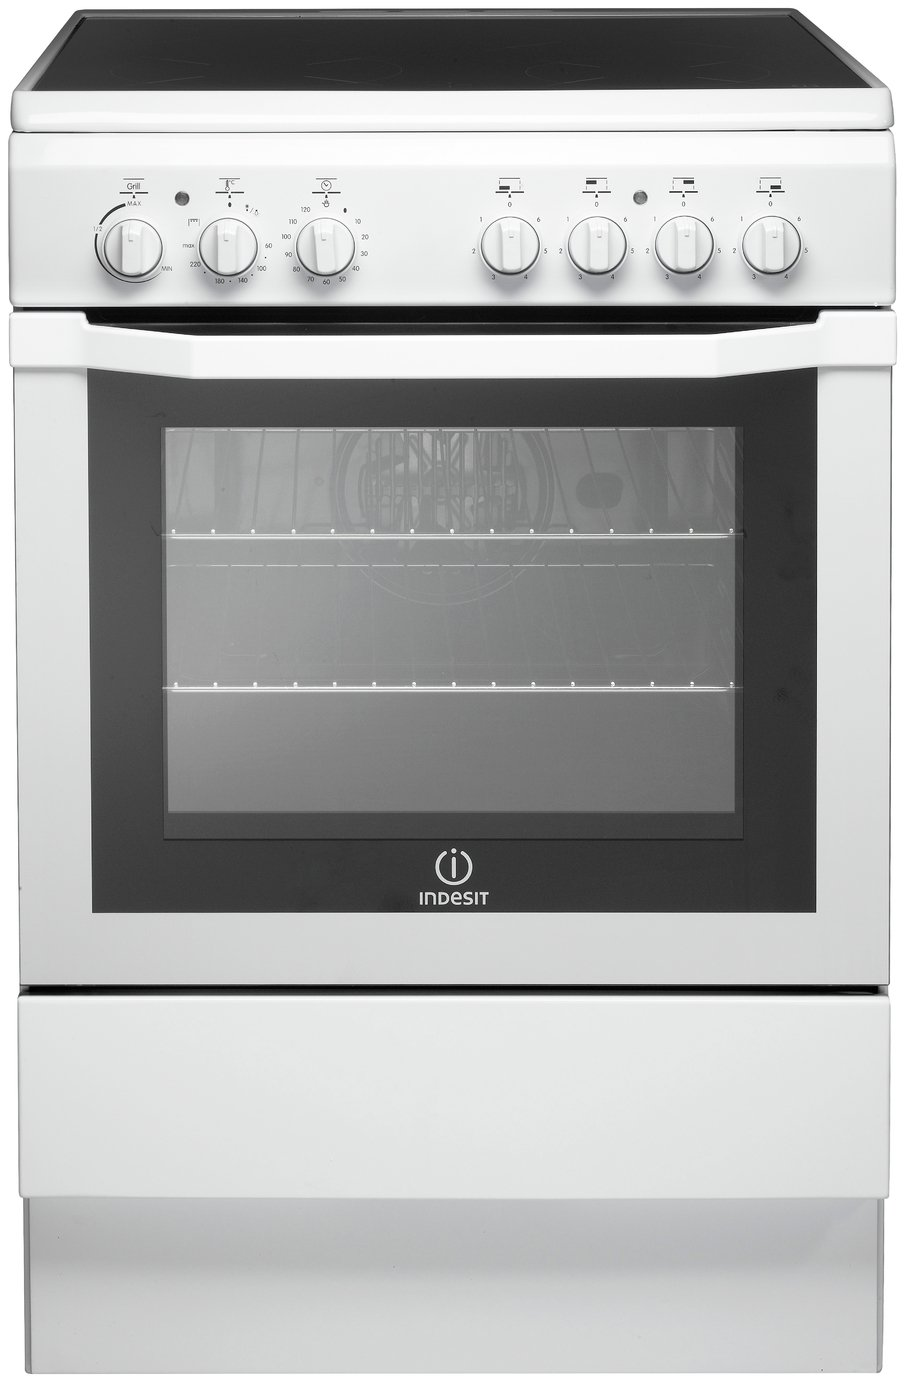 Indesit I6VV2AW/ Freestanding Cooker - White from Indesit